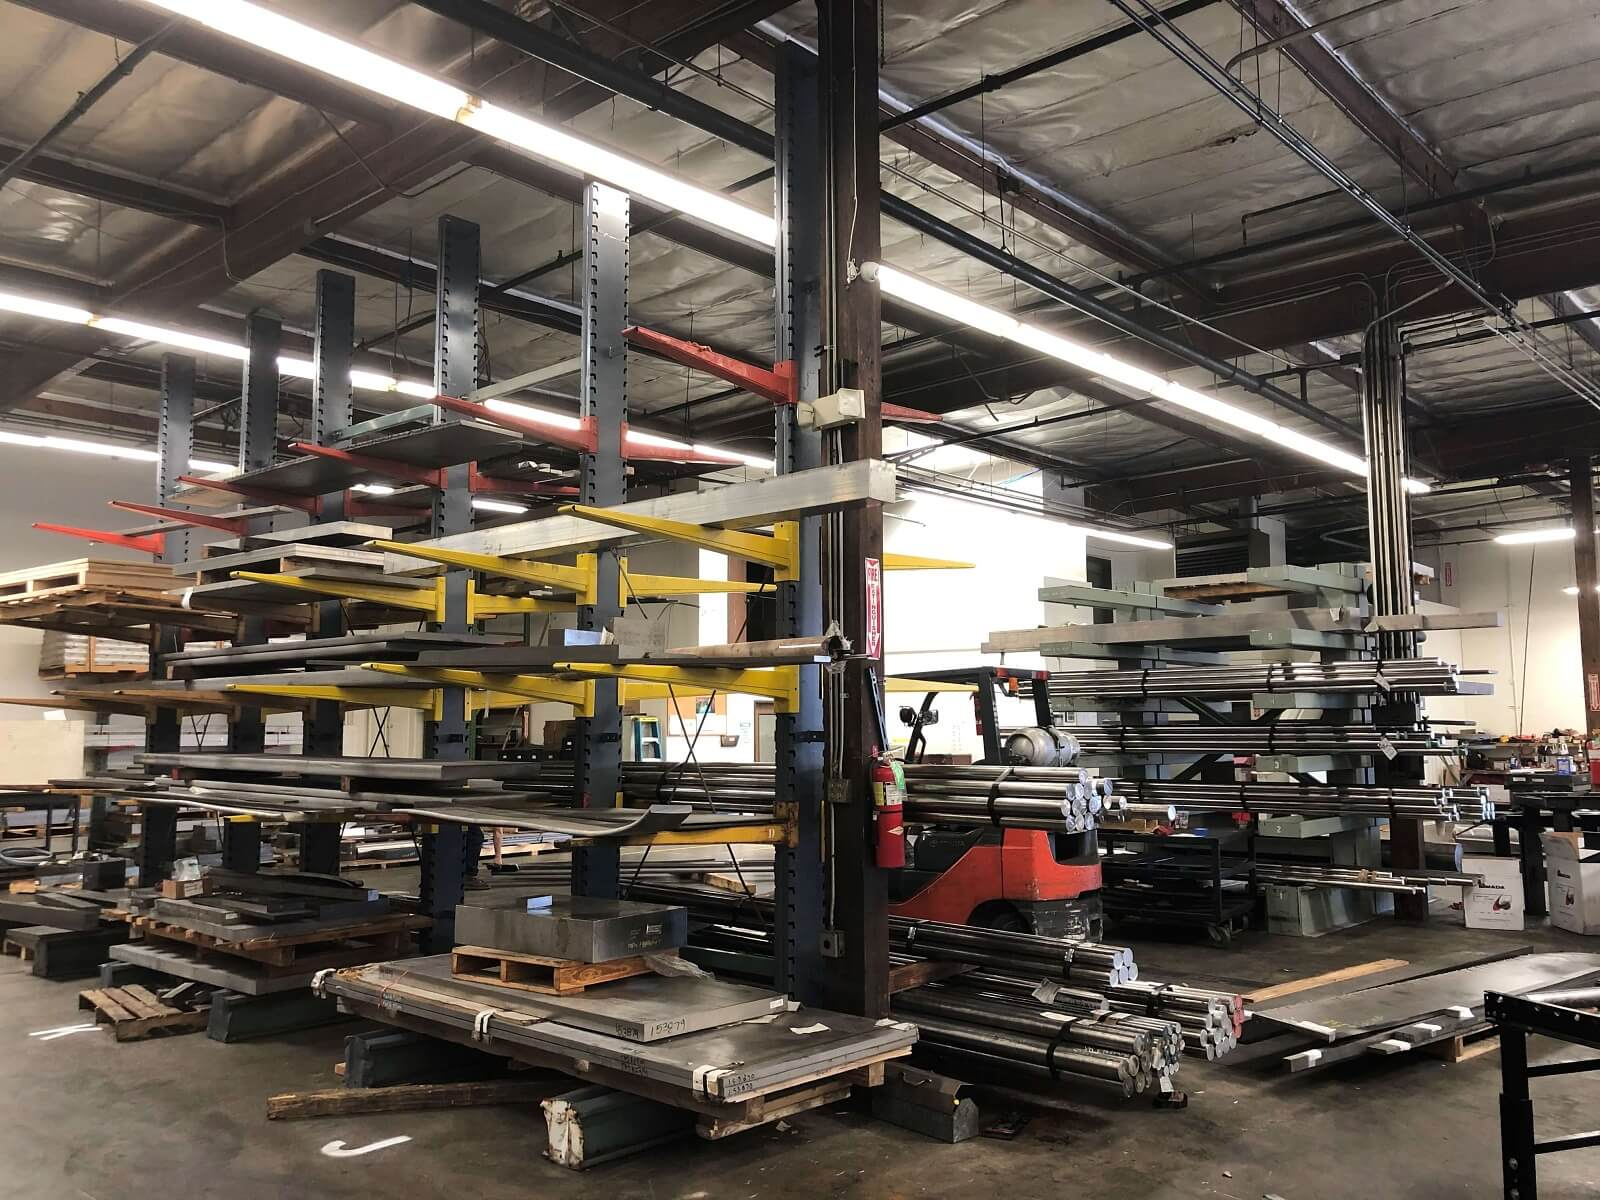 Metals Company Goes from Strength to Strength Creating a Full-Service Supply, Distribution and Recycling System